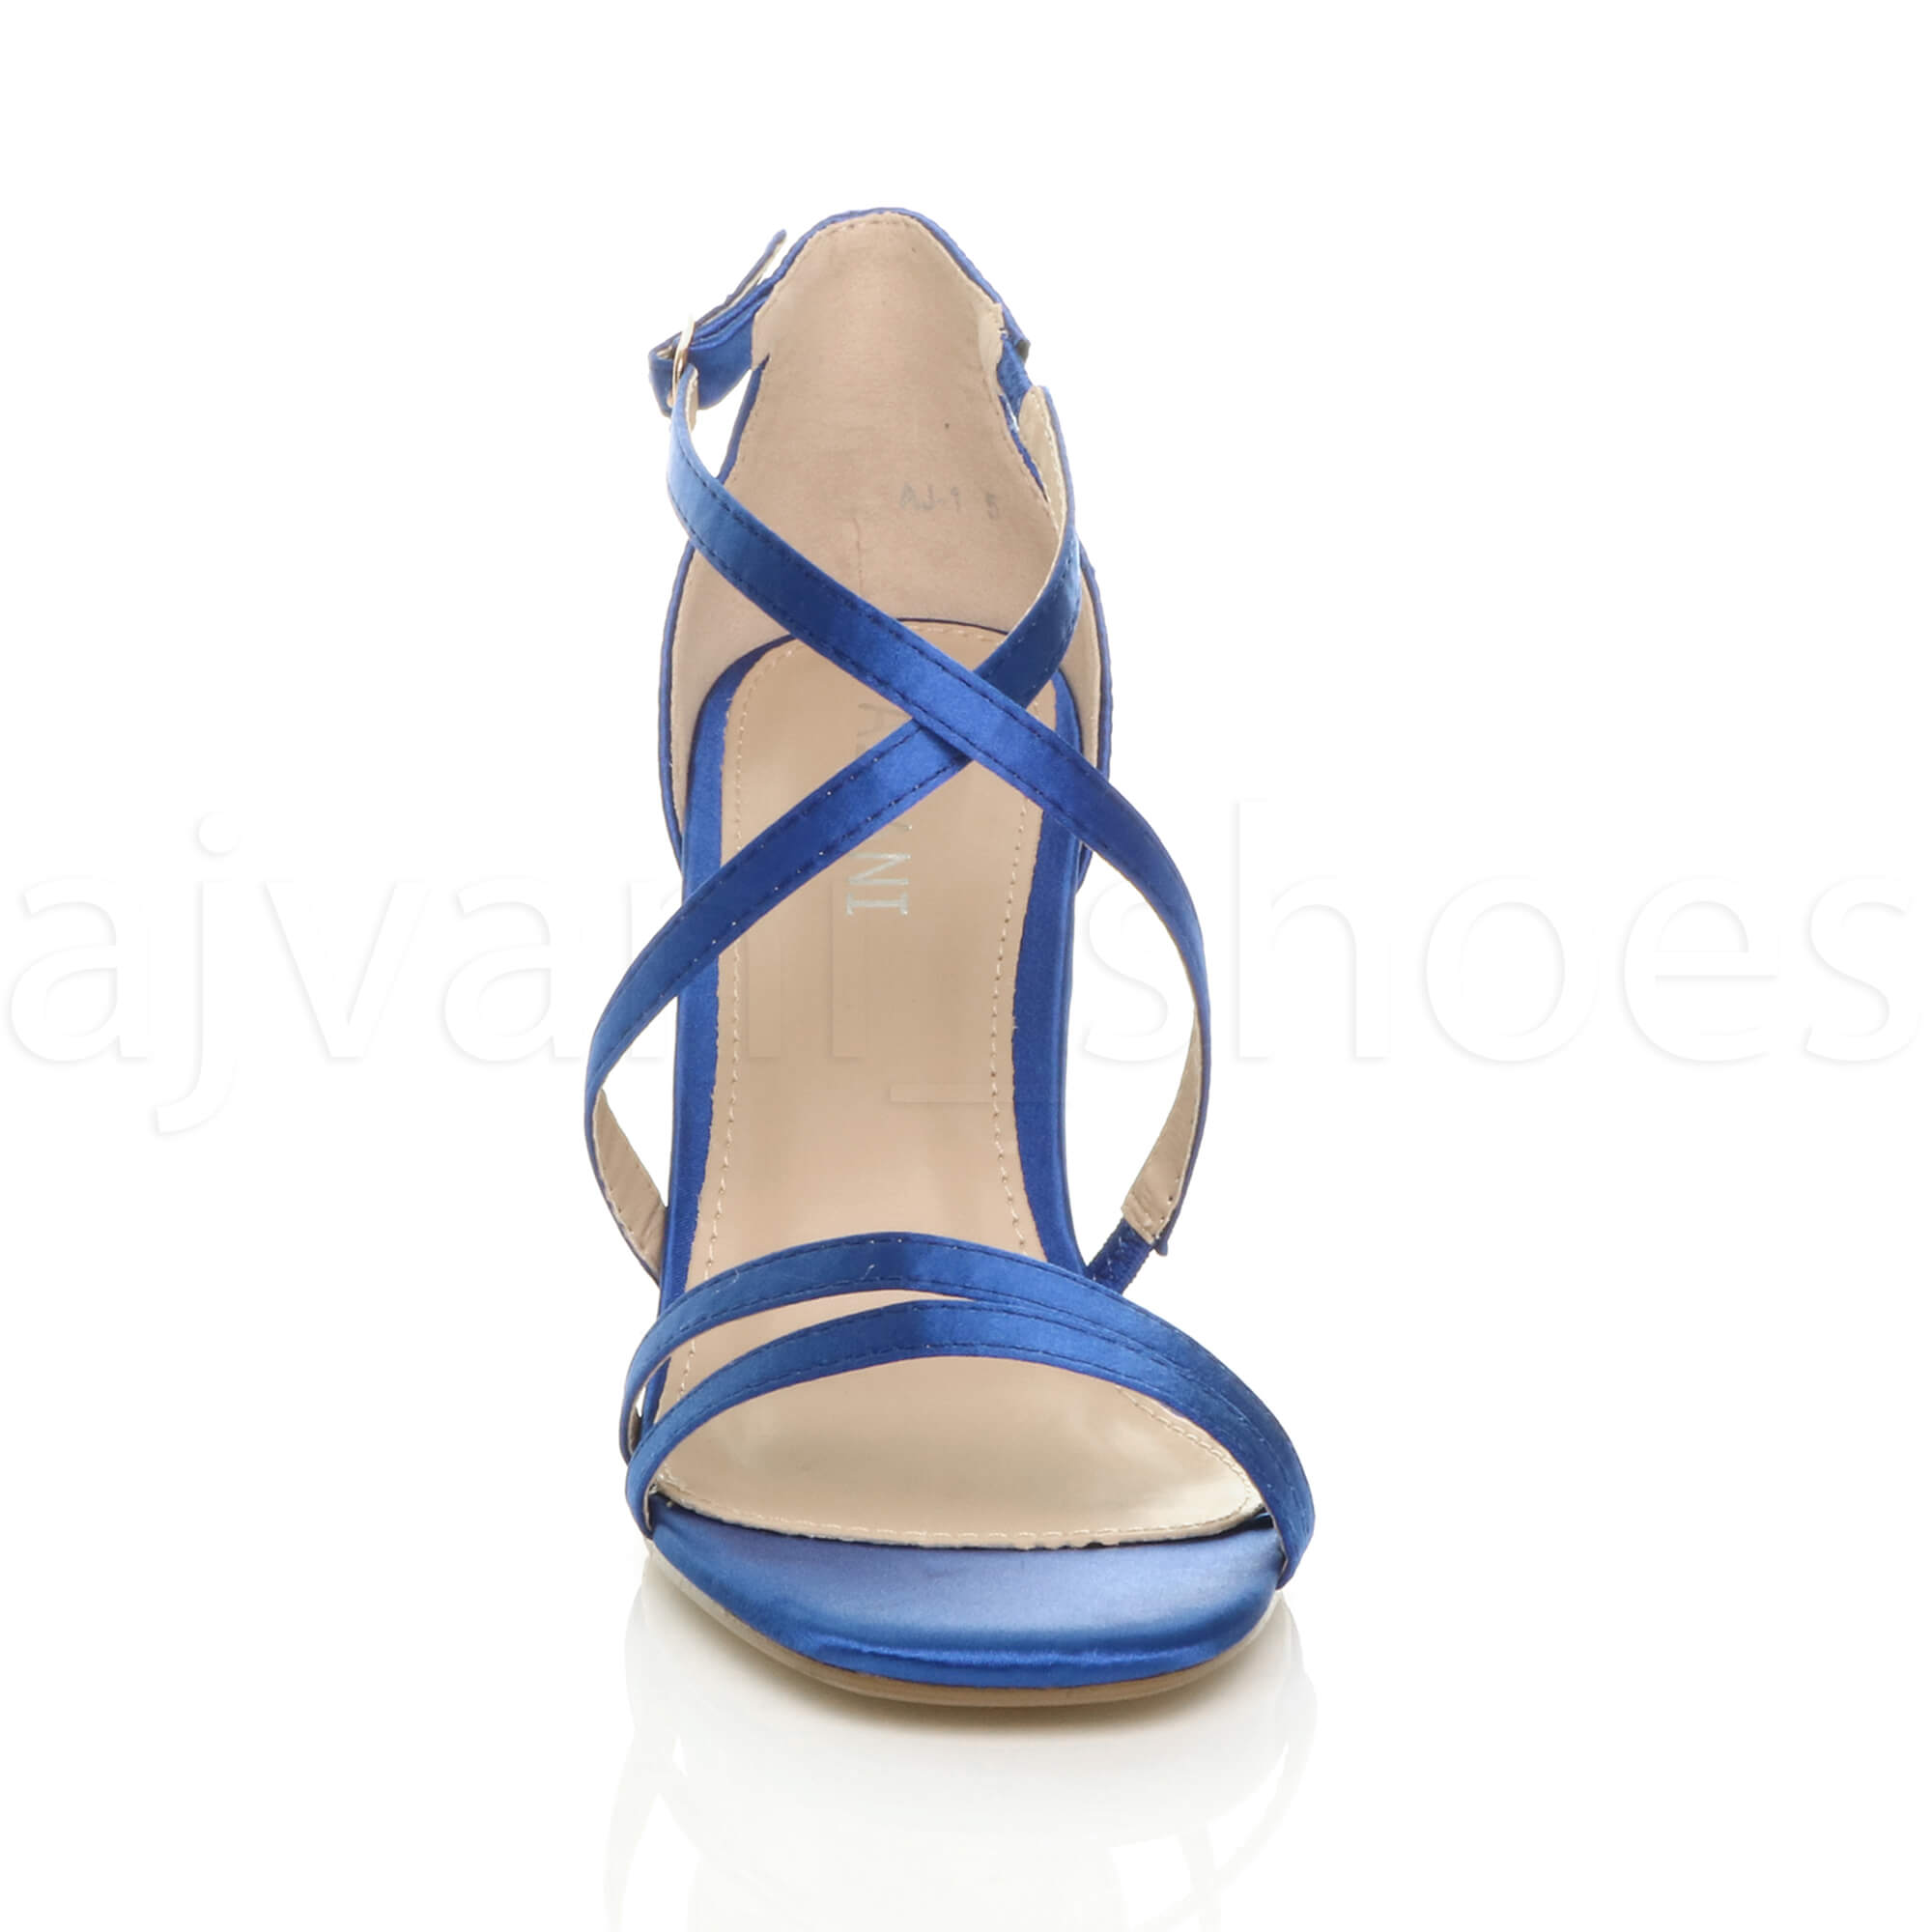 WOMENS-LADIES-MID-HIGH-HEEL-STRAPPY-CROSSOVER-WEDDING-PROM-SANDALS-SHOES-SIZE thumbnail 104